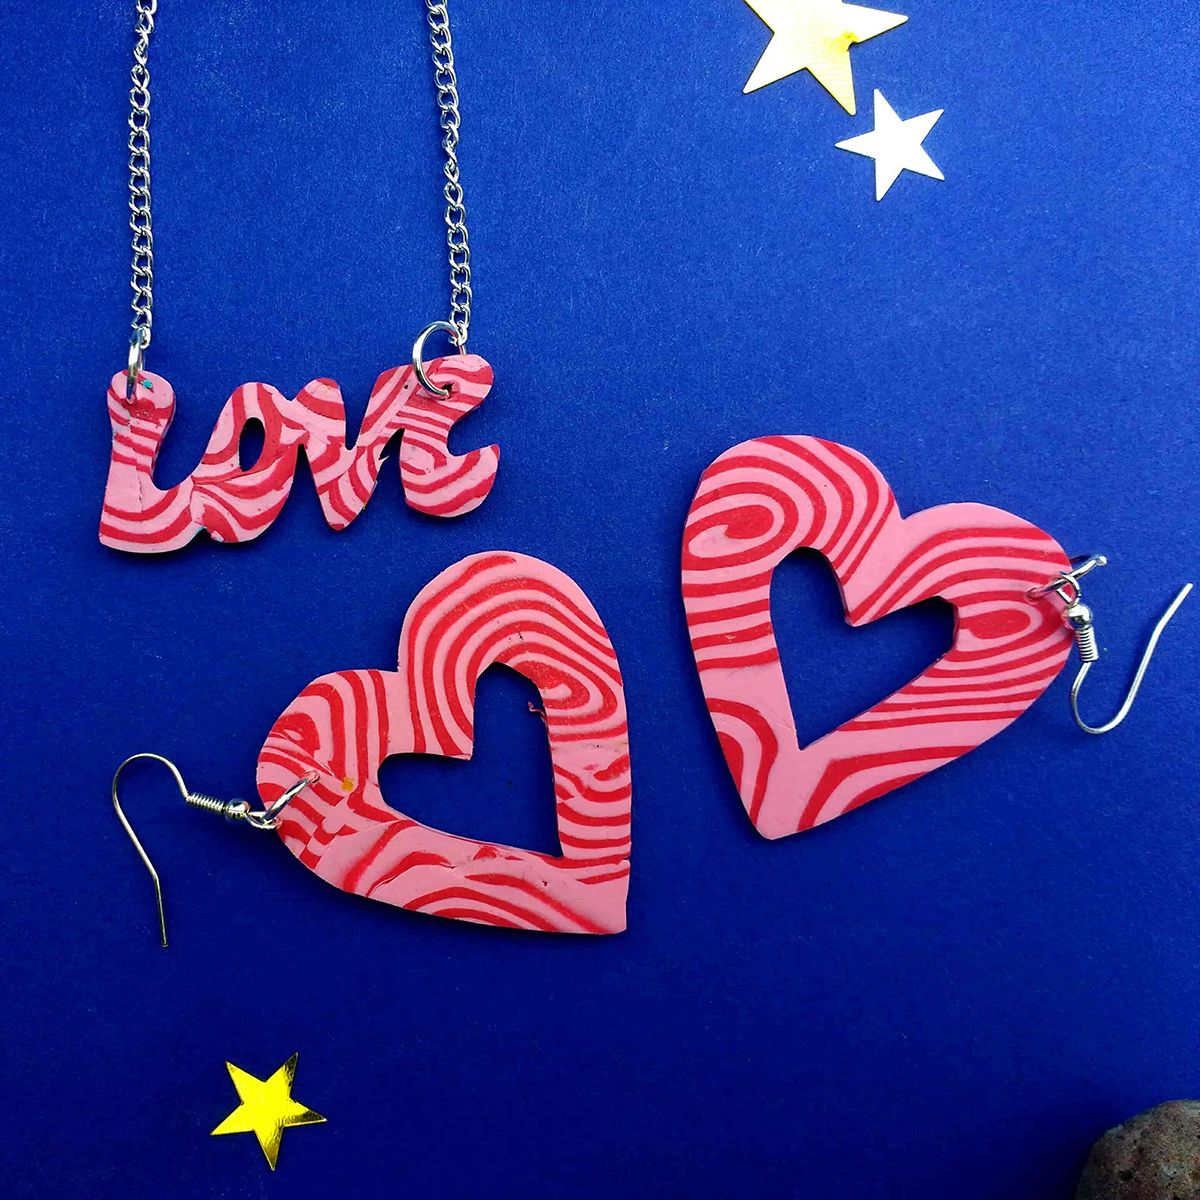 Love Necklace & Heart Earring Gift Set | Hand Cut Polymer Clay Jewellery Gift